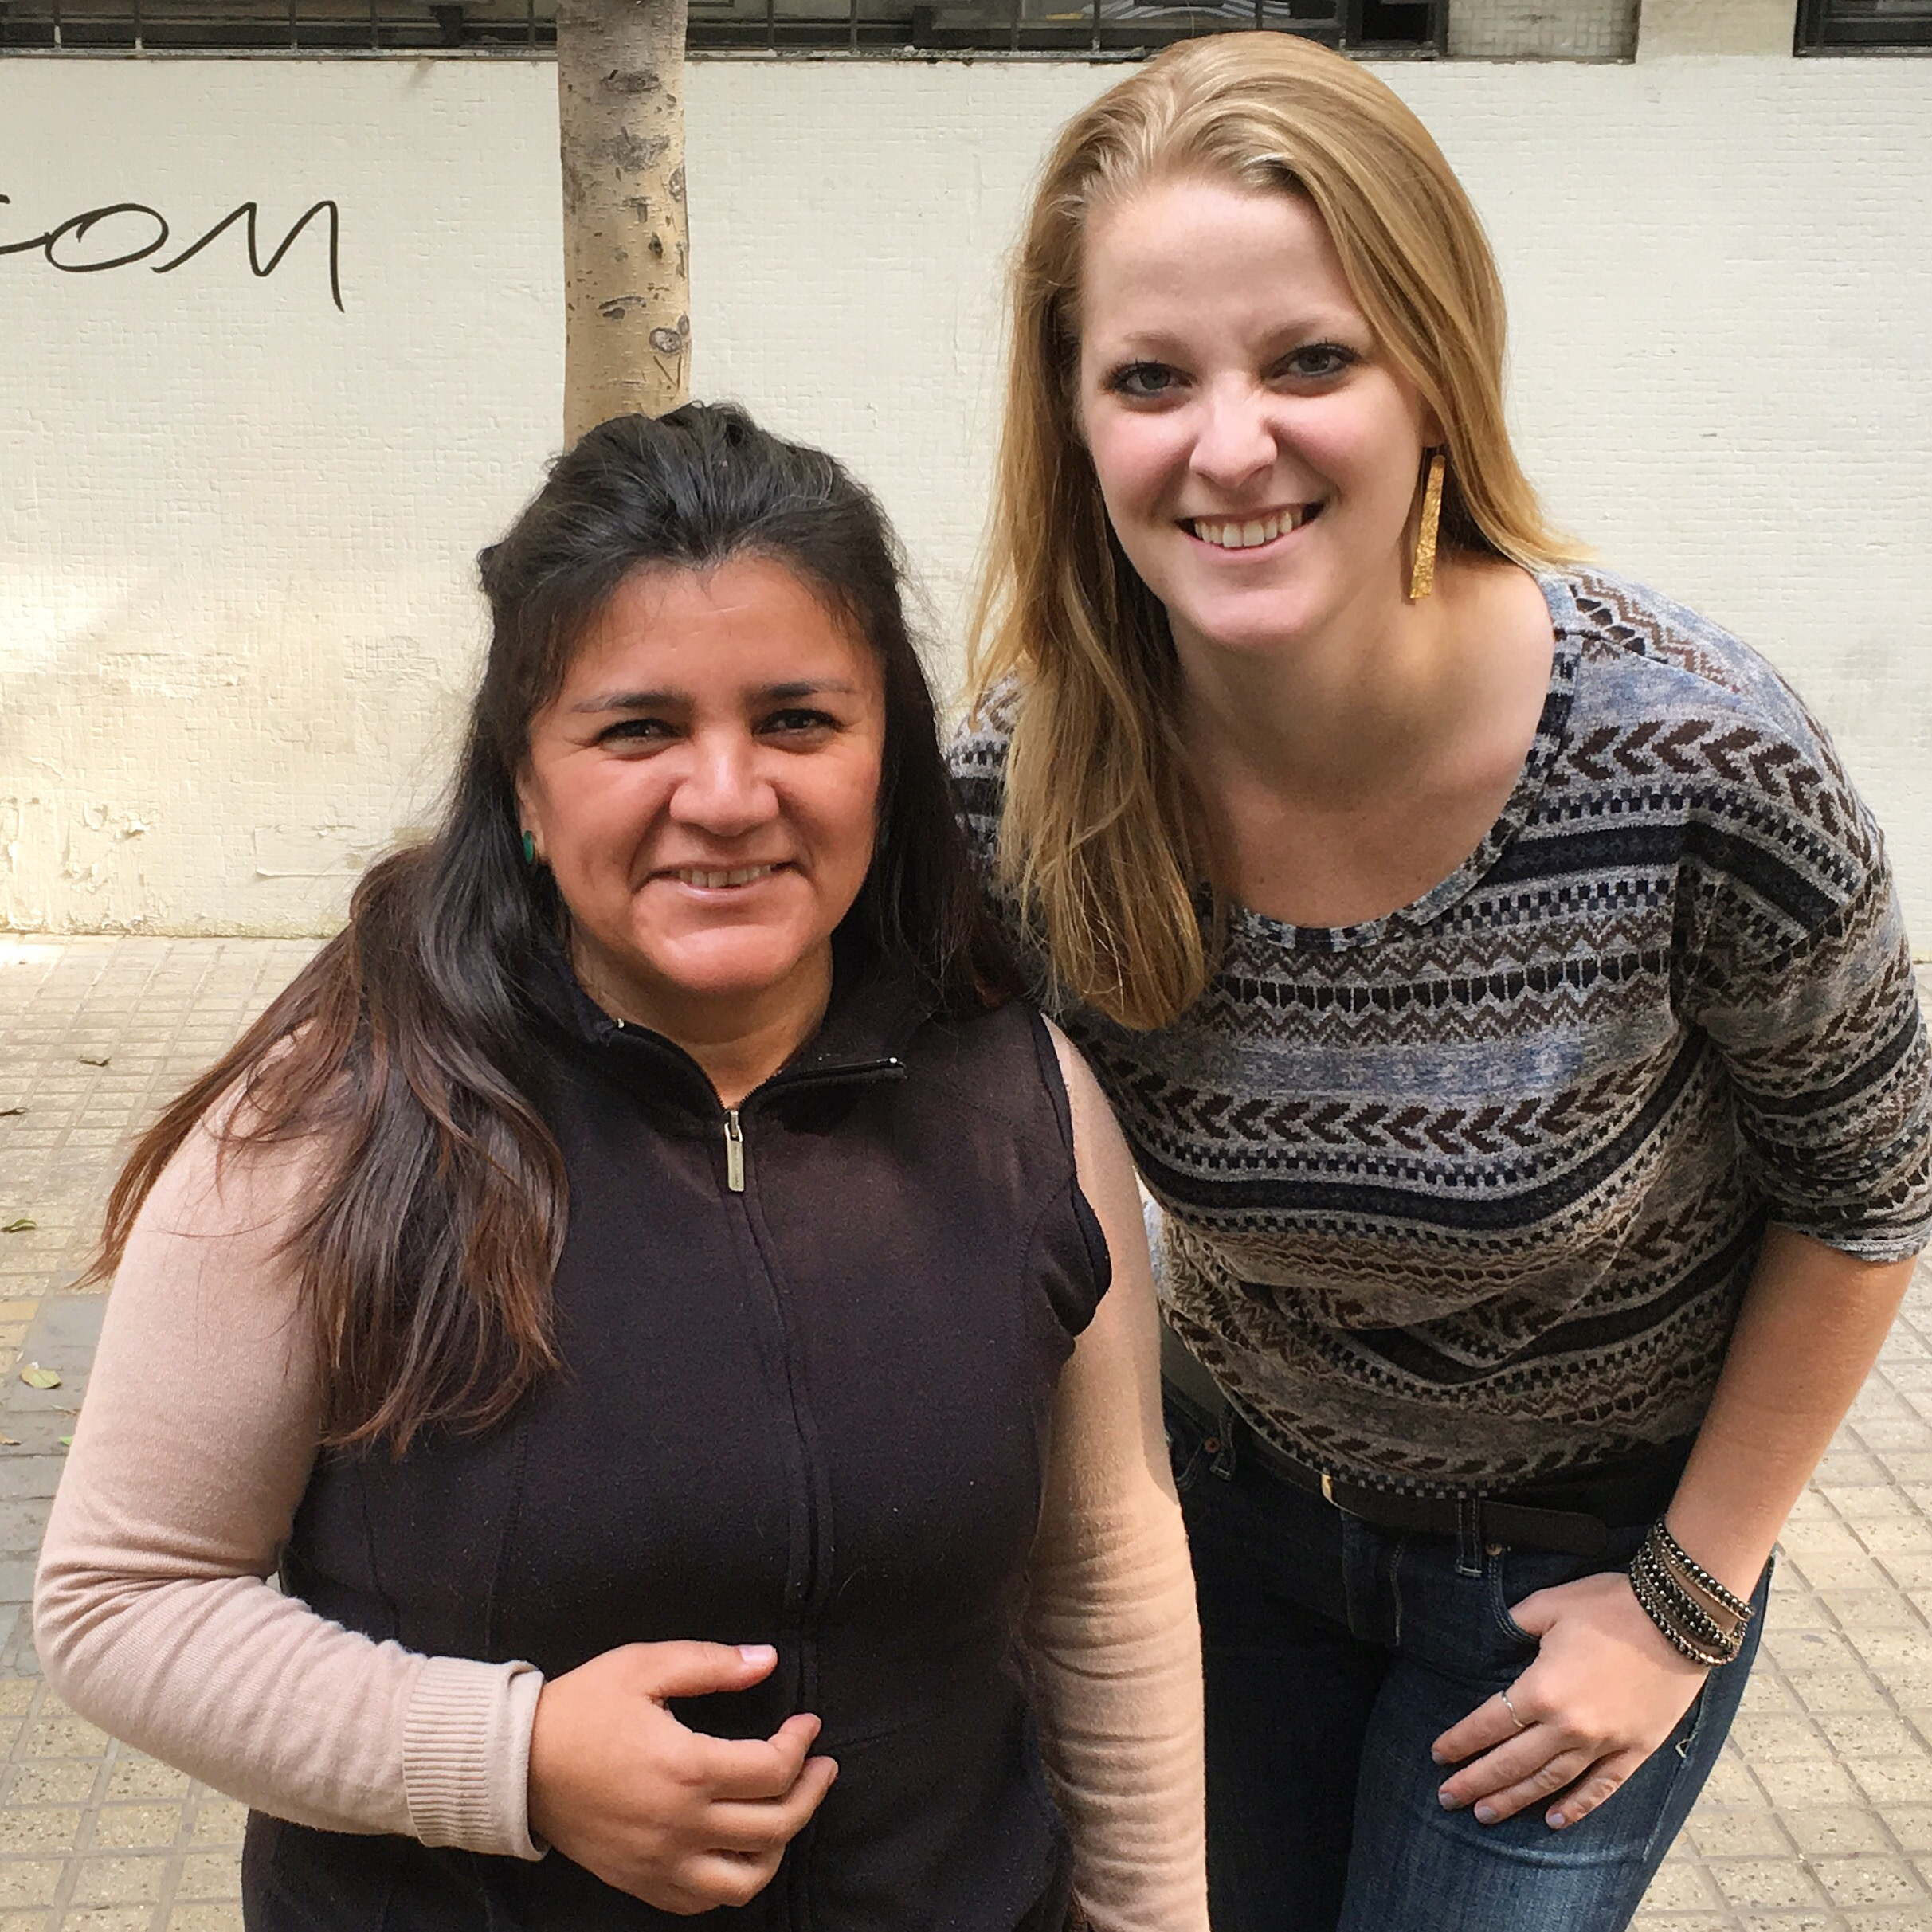 Fair Anita works with 3 great fair trade organizations in Chile, along with this very talented woman, Ana. Fair Trade products are typically made from their natural resources, including copper, semi-precious stones, and brass.